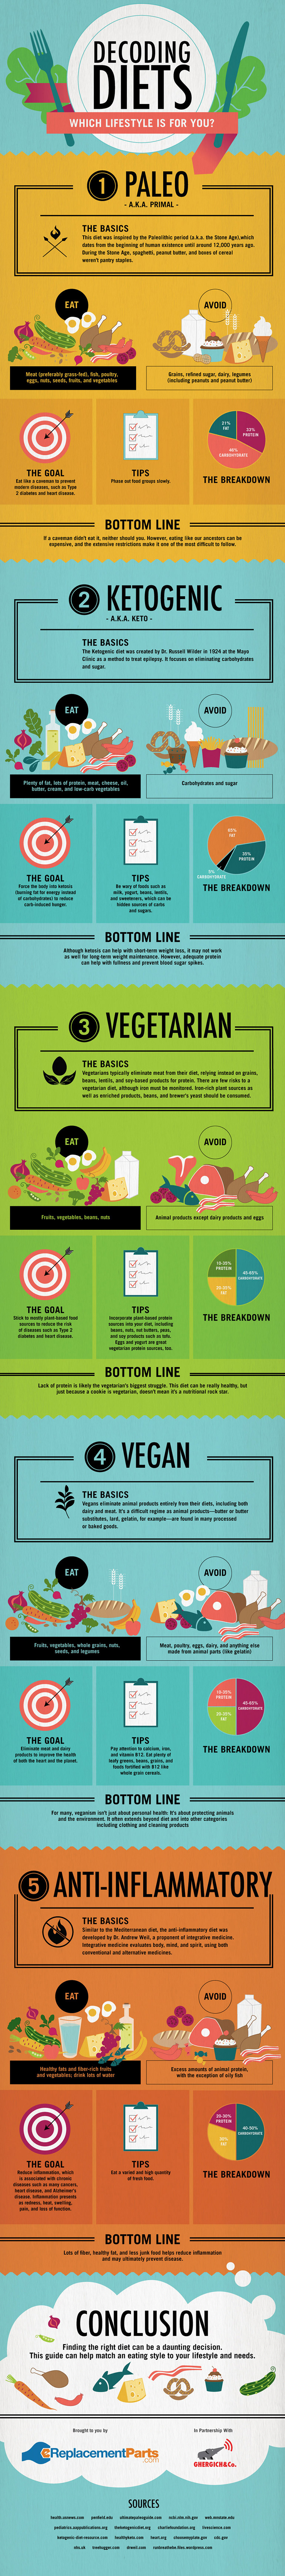 Decoding Diets: Why Diets Should Be About Enjoying Food, Not Restrictive - Infographic